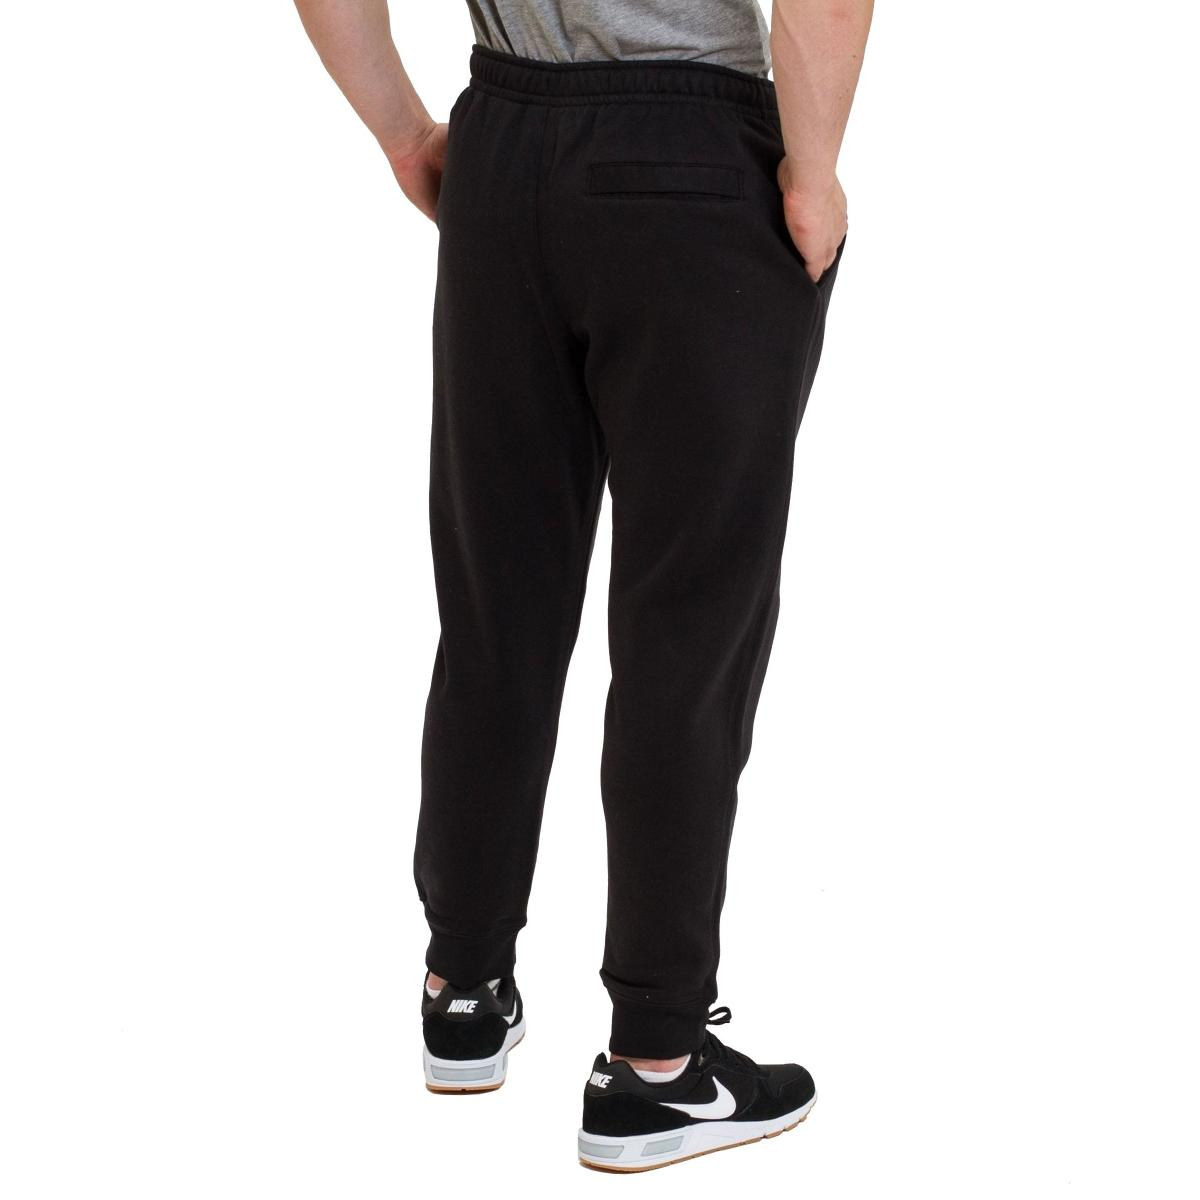 Pantaloni joggers Nike con stampa Just Do It da uomo rif. BV5099-010